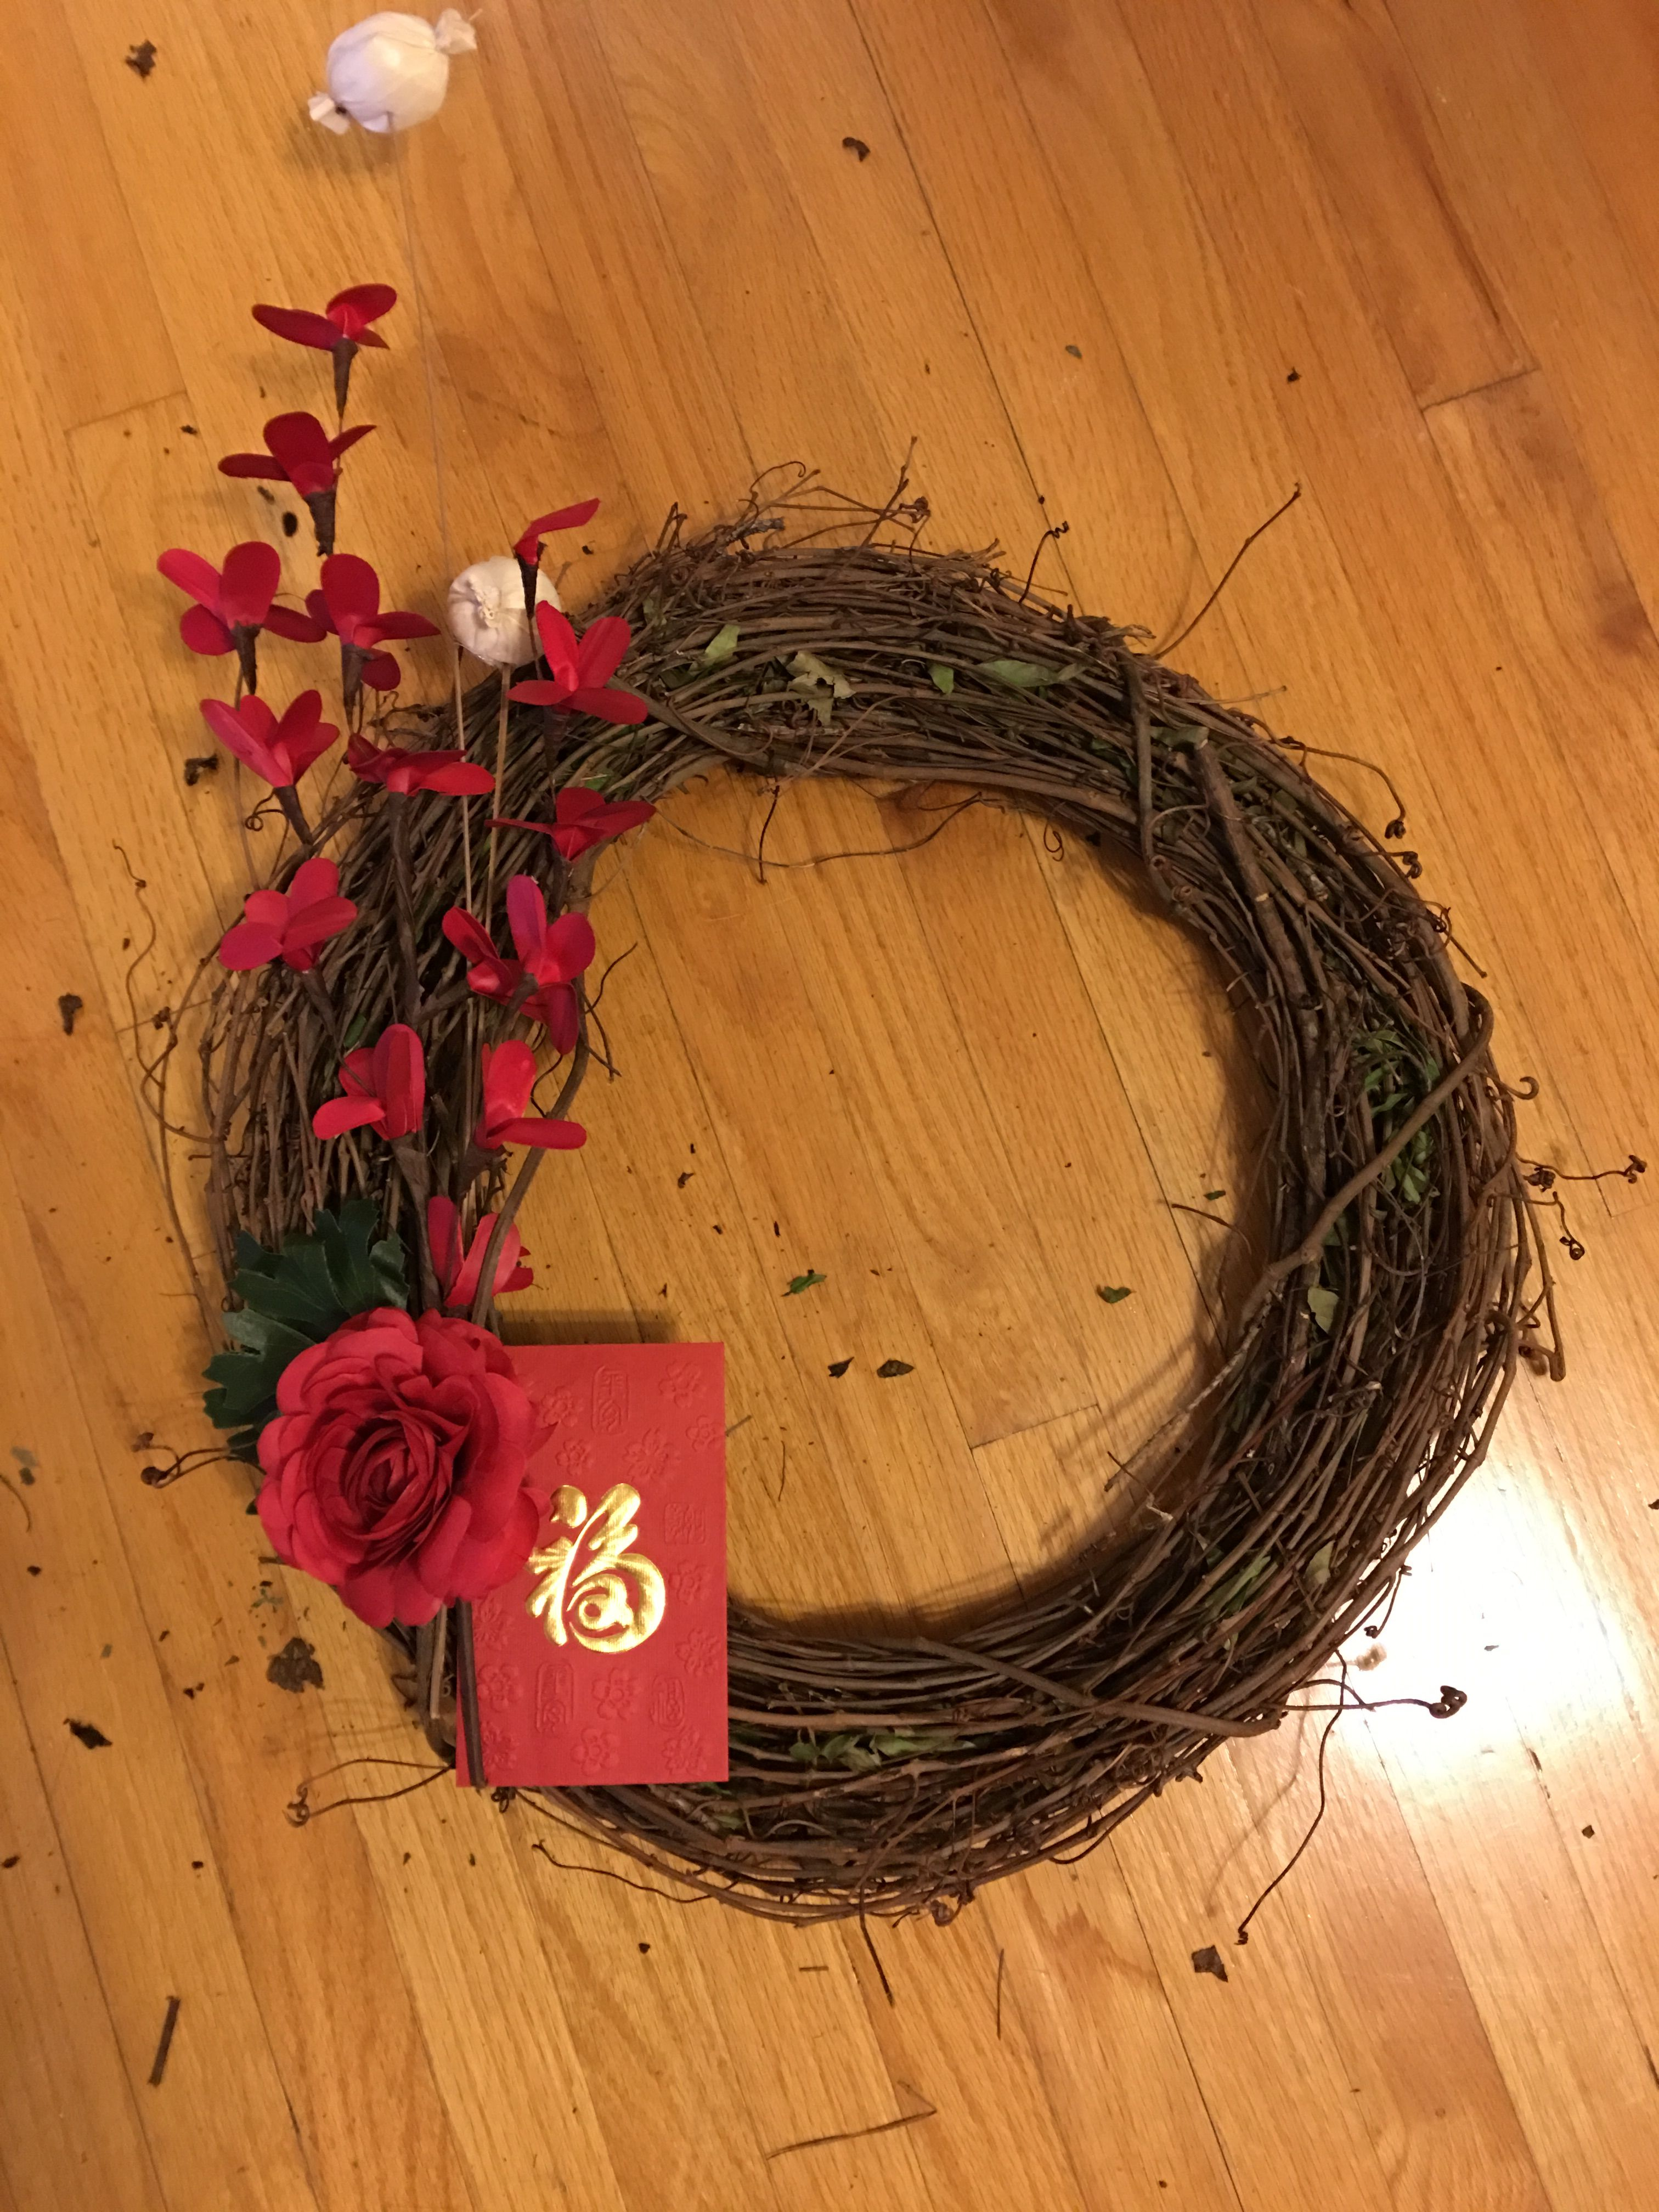 Pin by Emily Do on Lunar new year decoration (With images ...